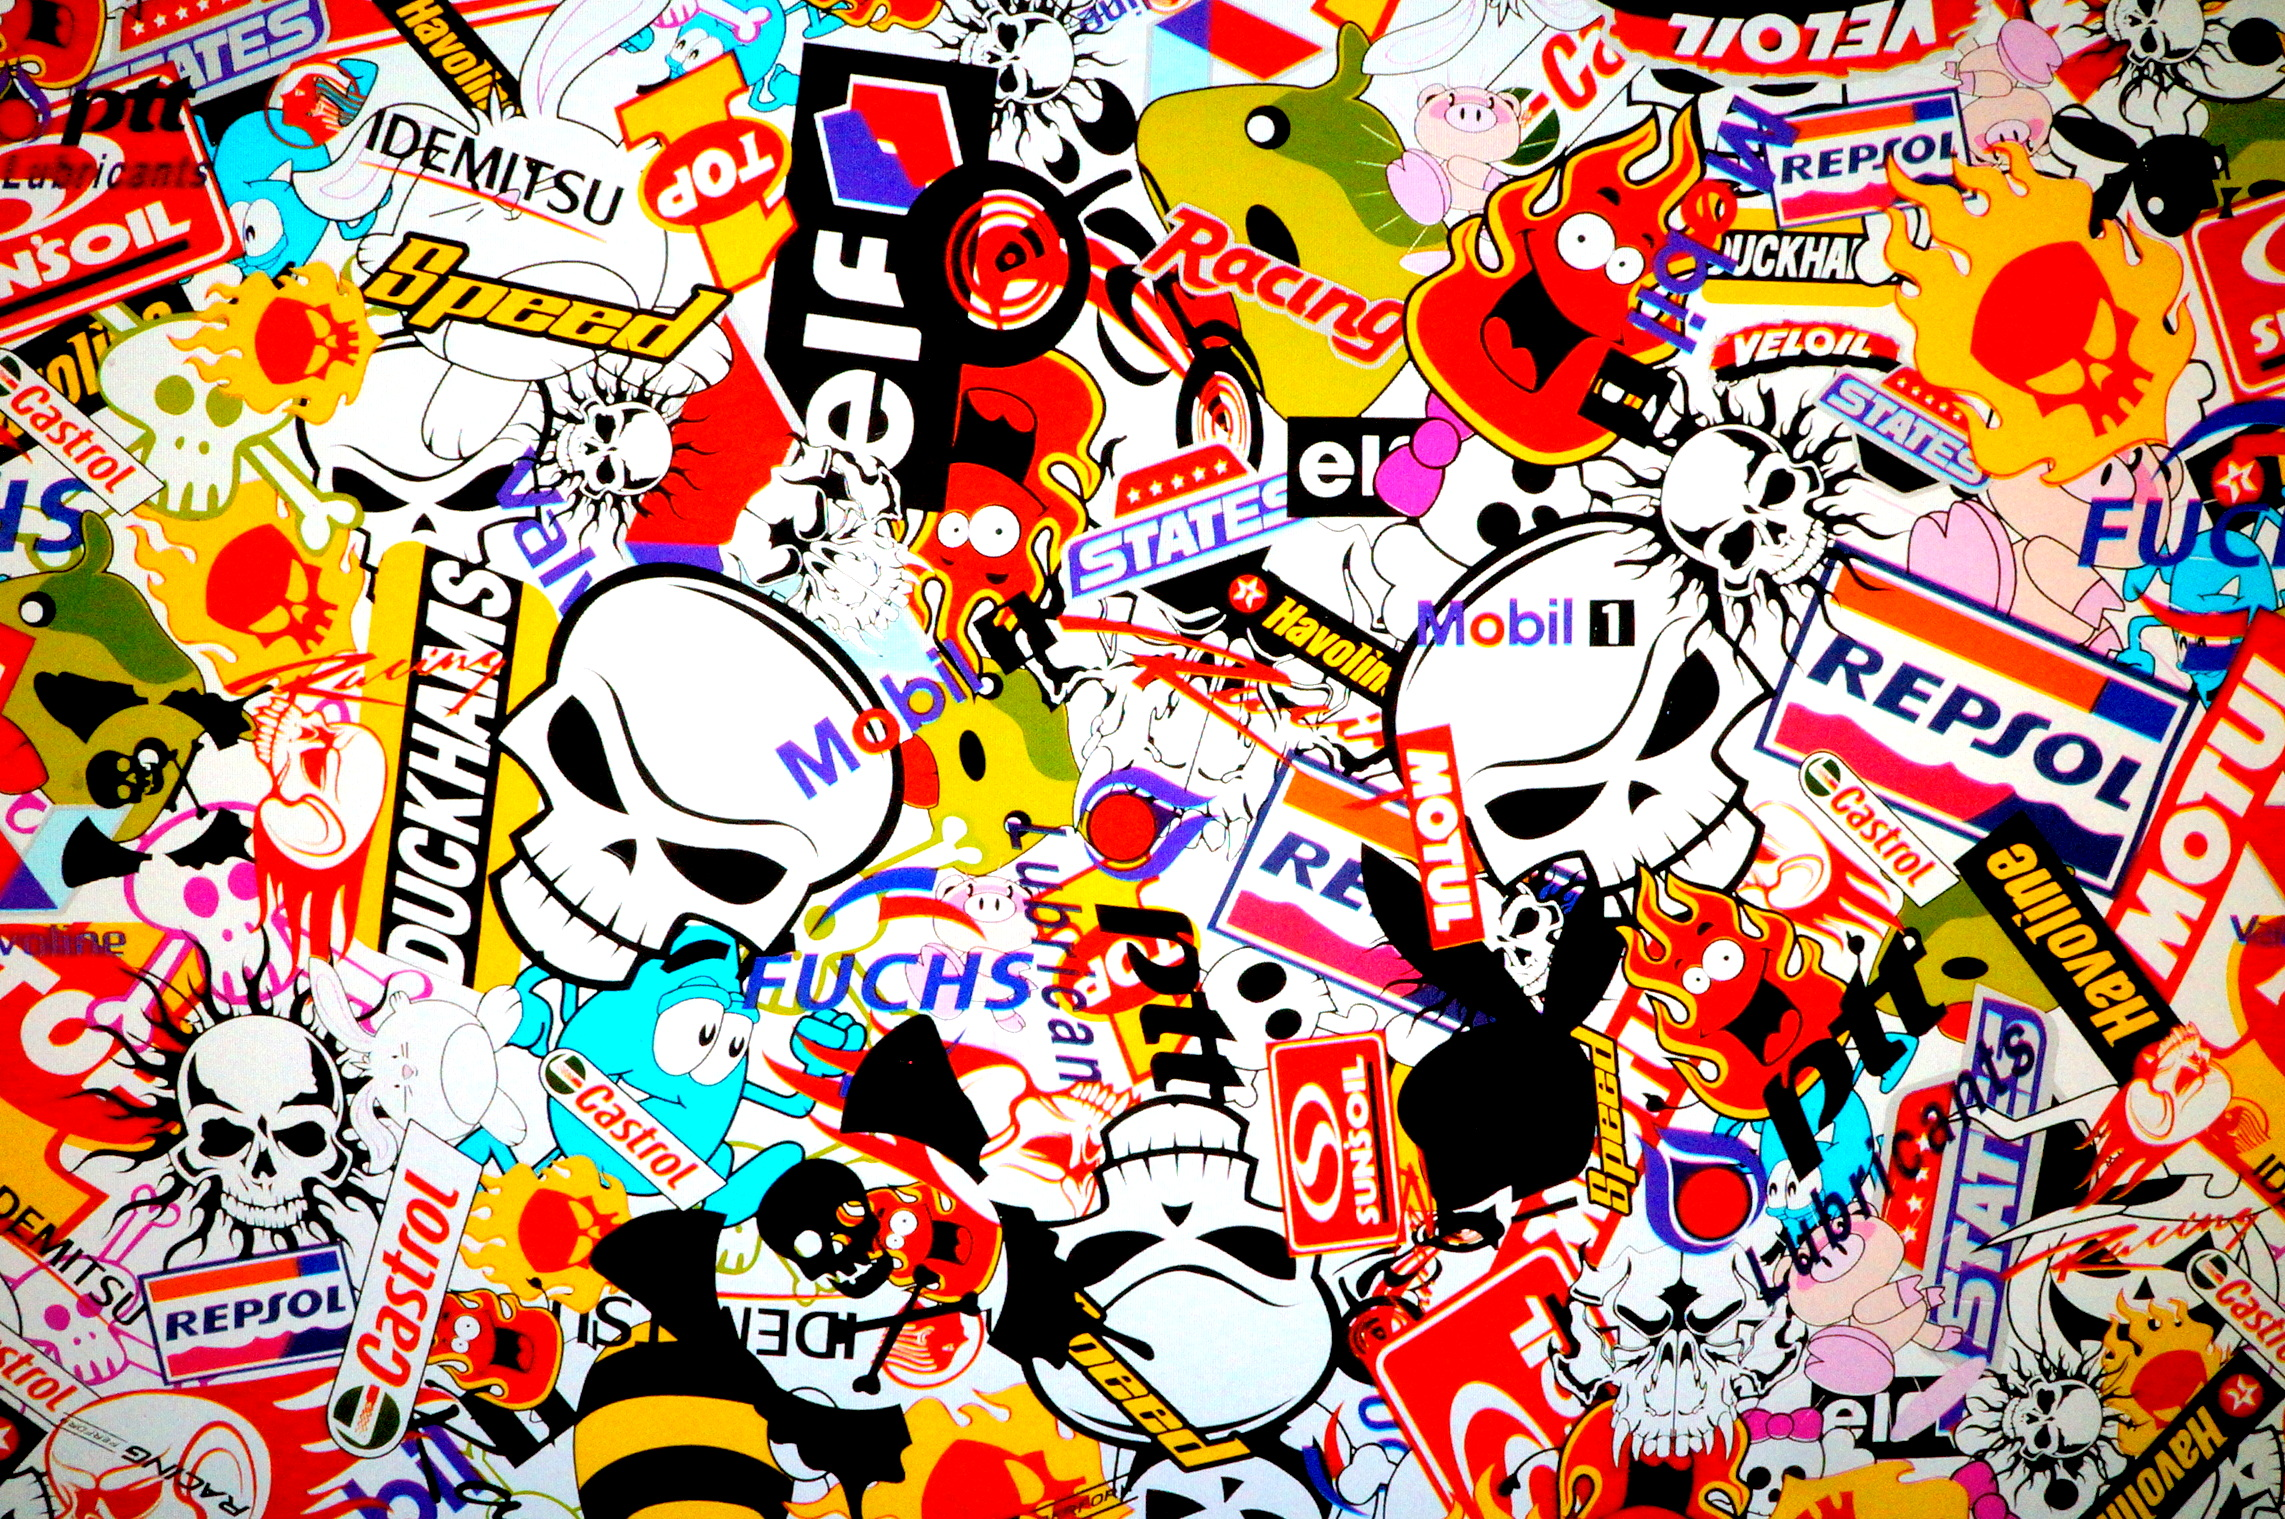 Sticker Bomb Wallpapers  Man Made  Hq Sticker Bomb Pictures